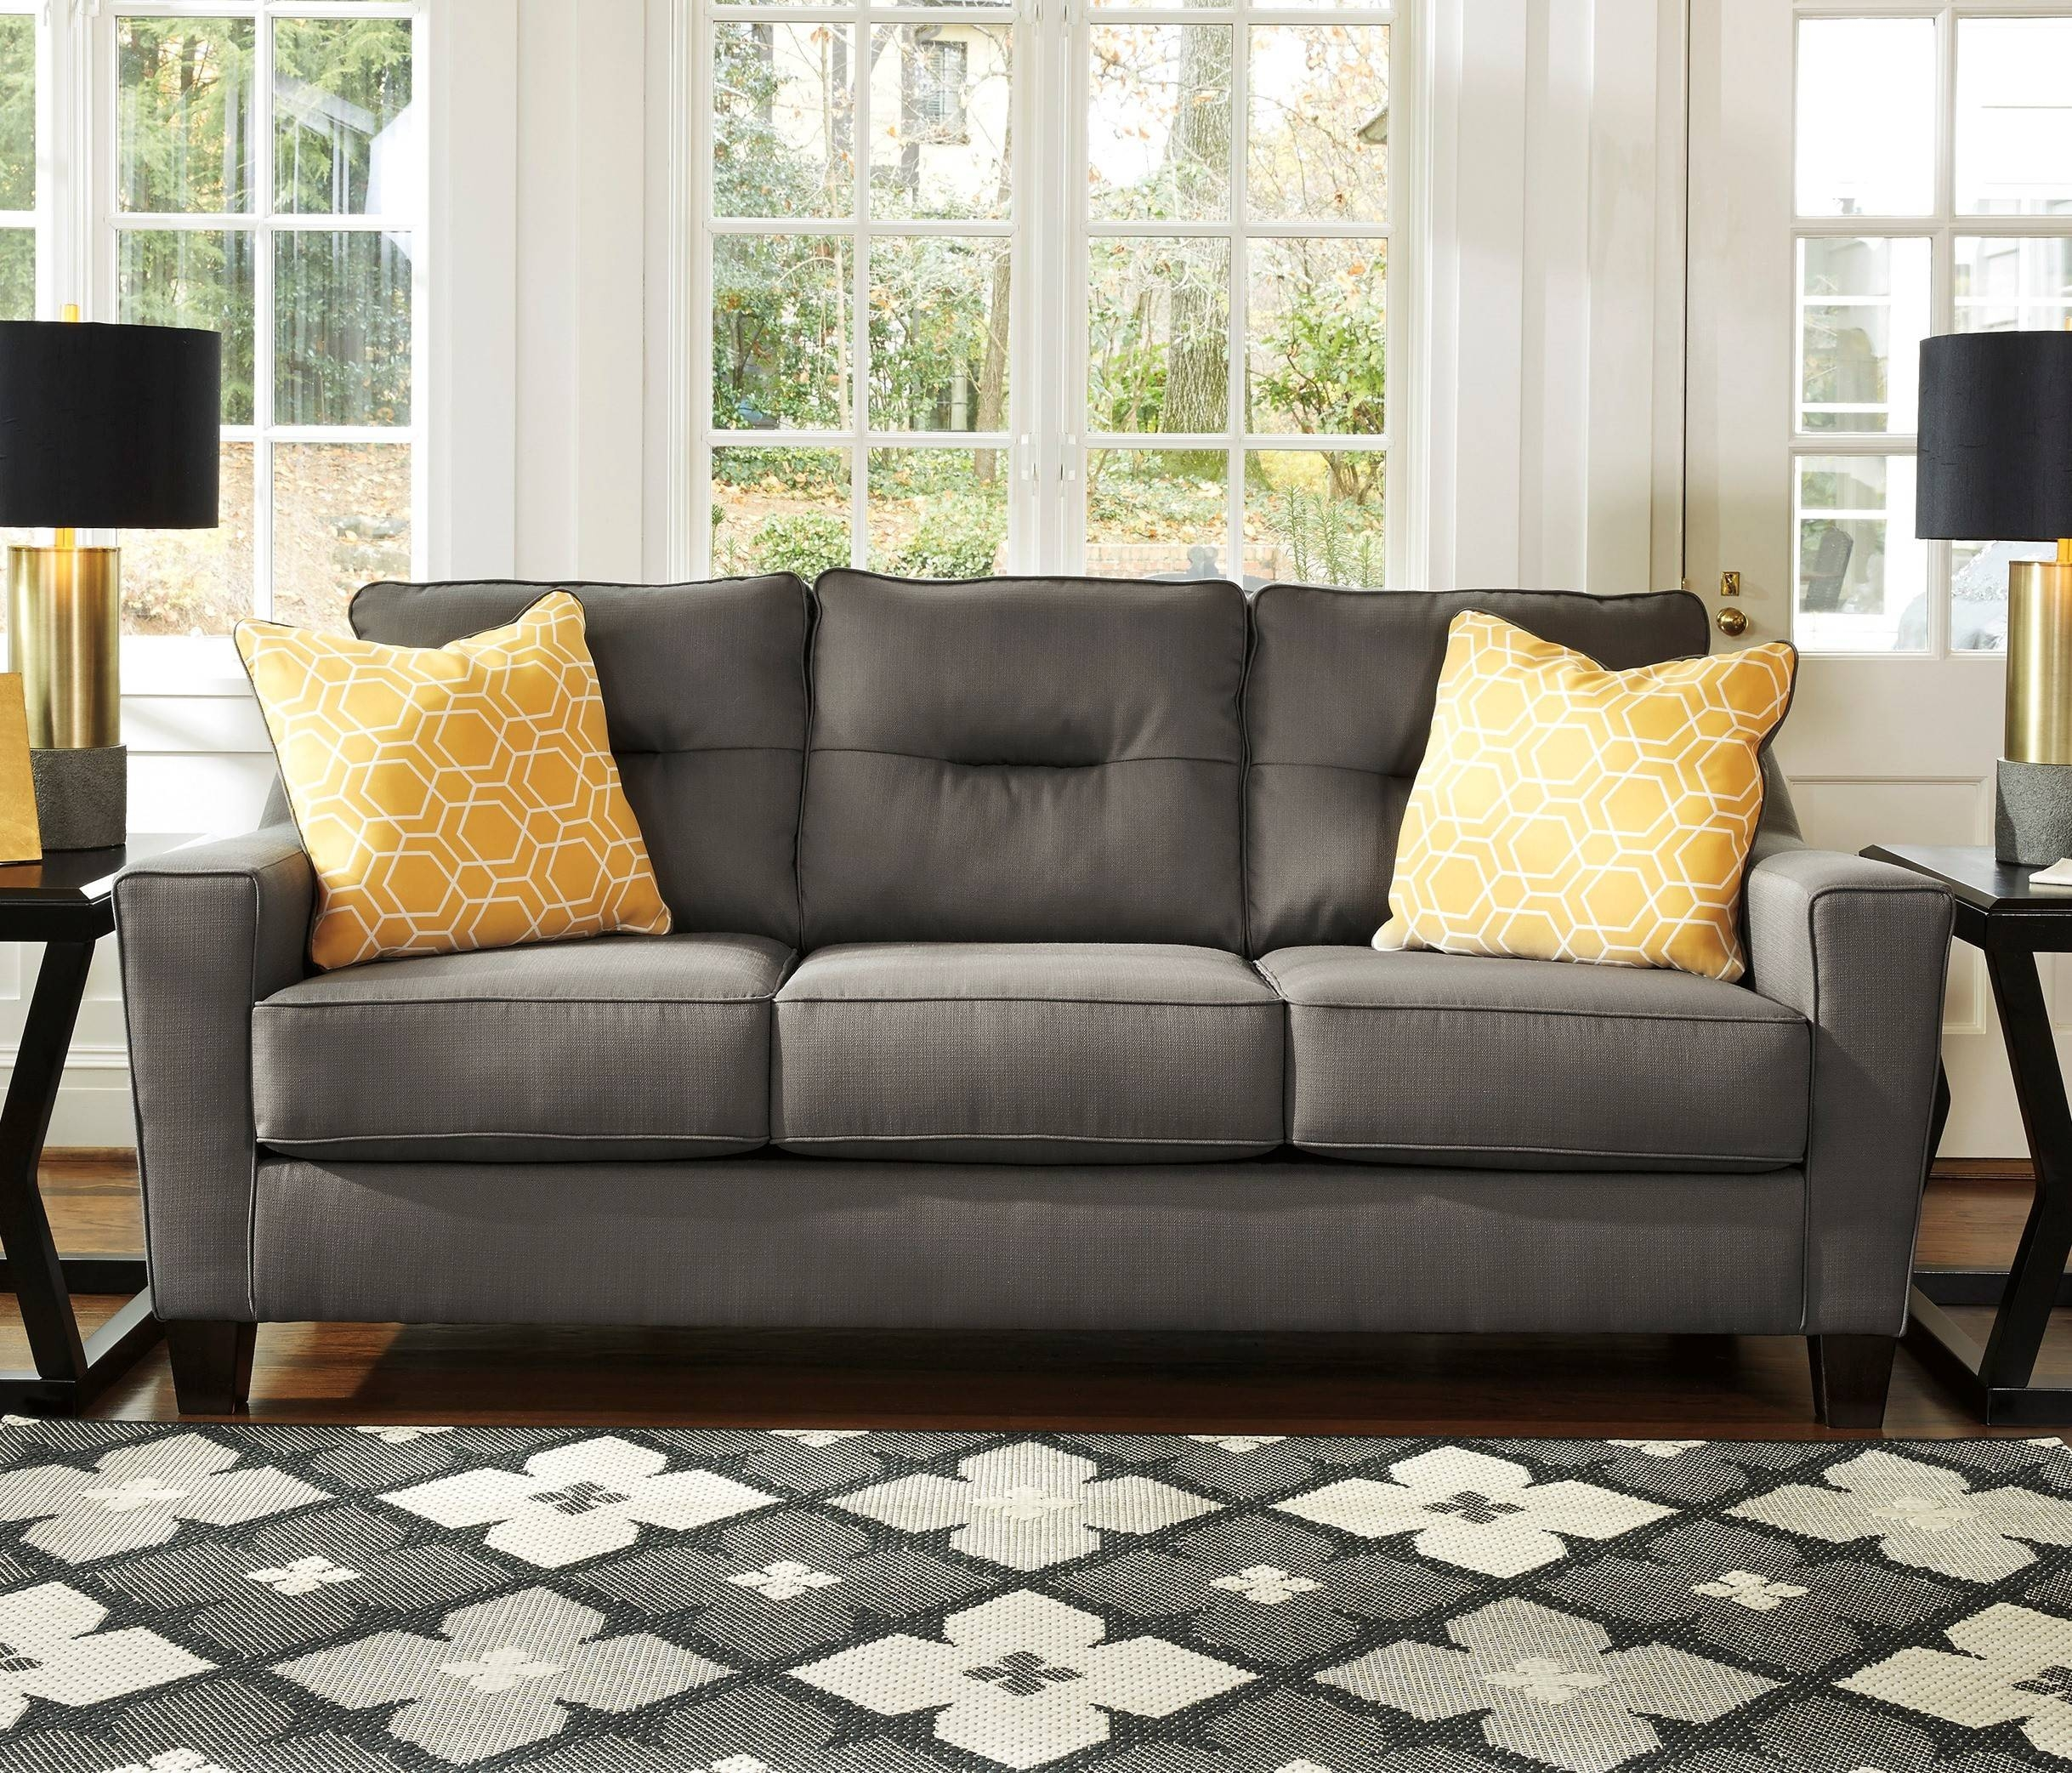 Ashley Furniture Forsan Gray Nuvella Fabric Upholstered Sofa With with regard to Ashley Furniture Gray Sofa (Image 5 of 30)